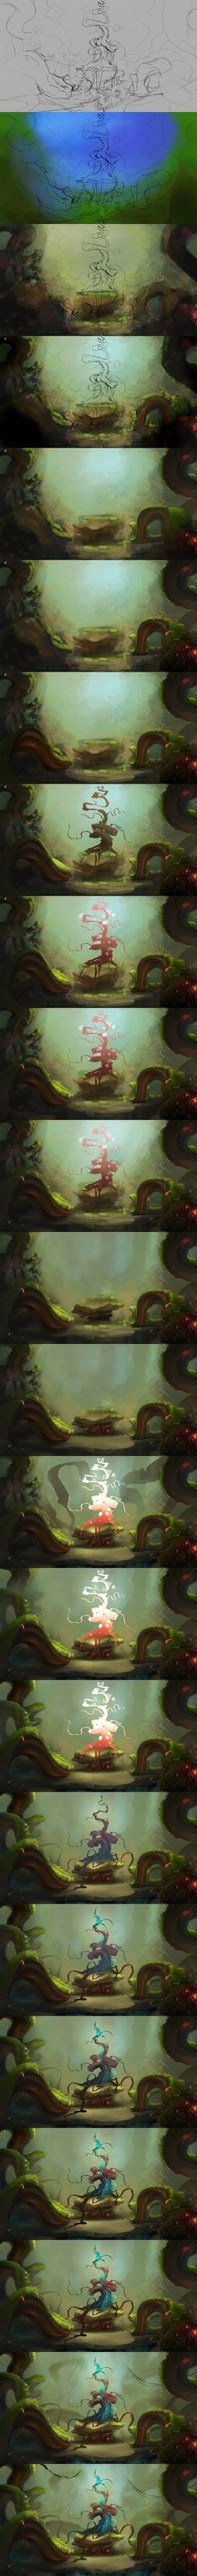 First tree PROCESS by Sergey-Lesiuk.deviantart.com on @DeviantArt